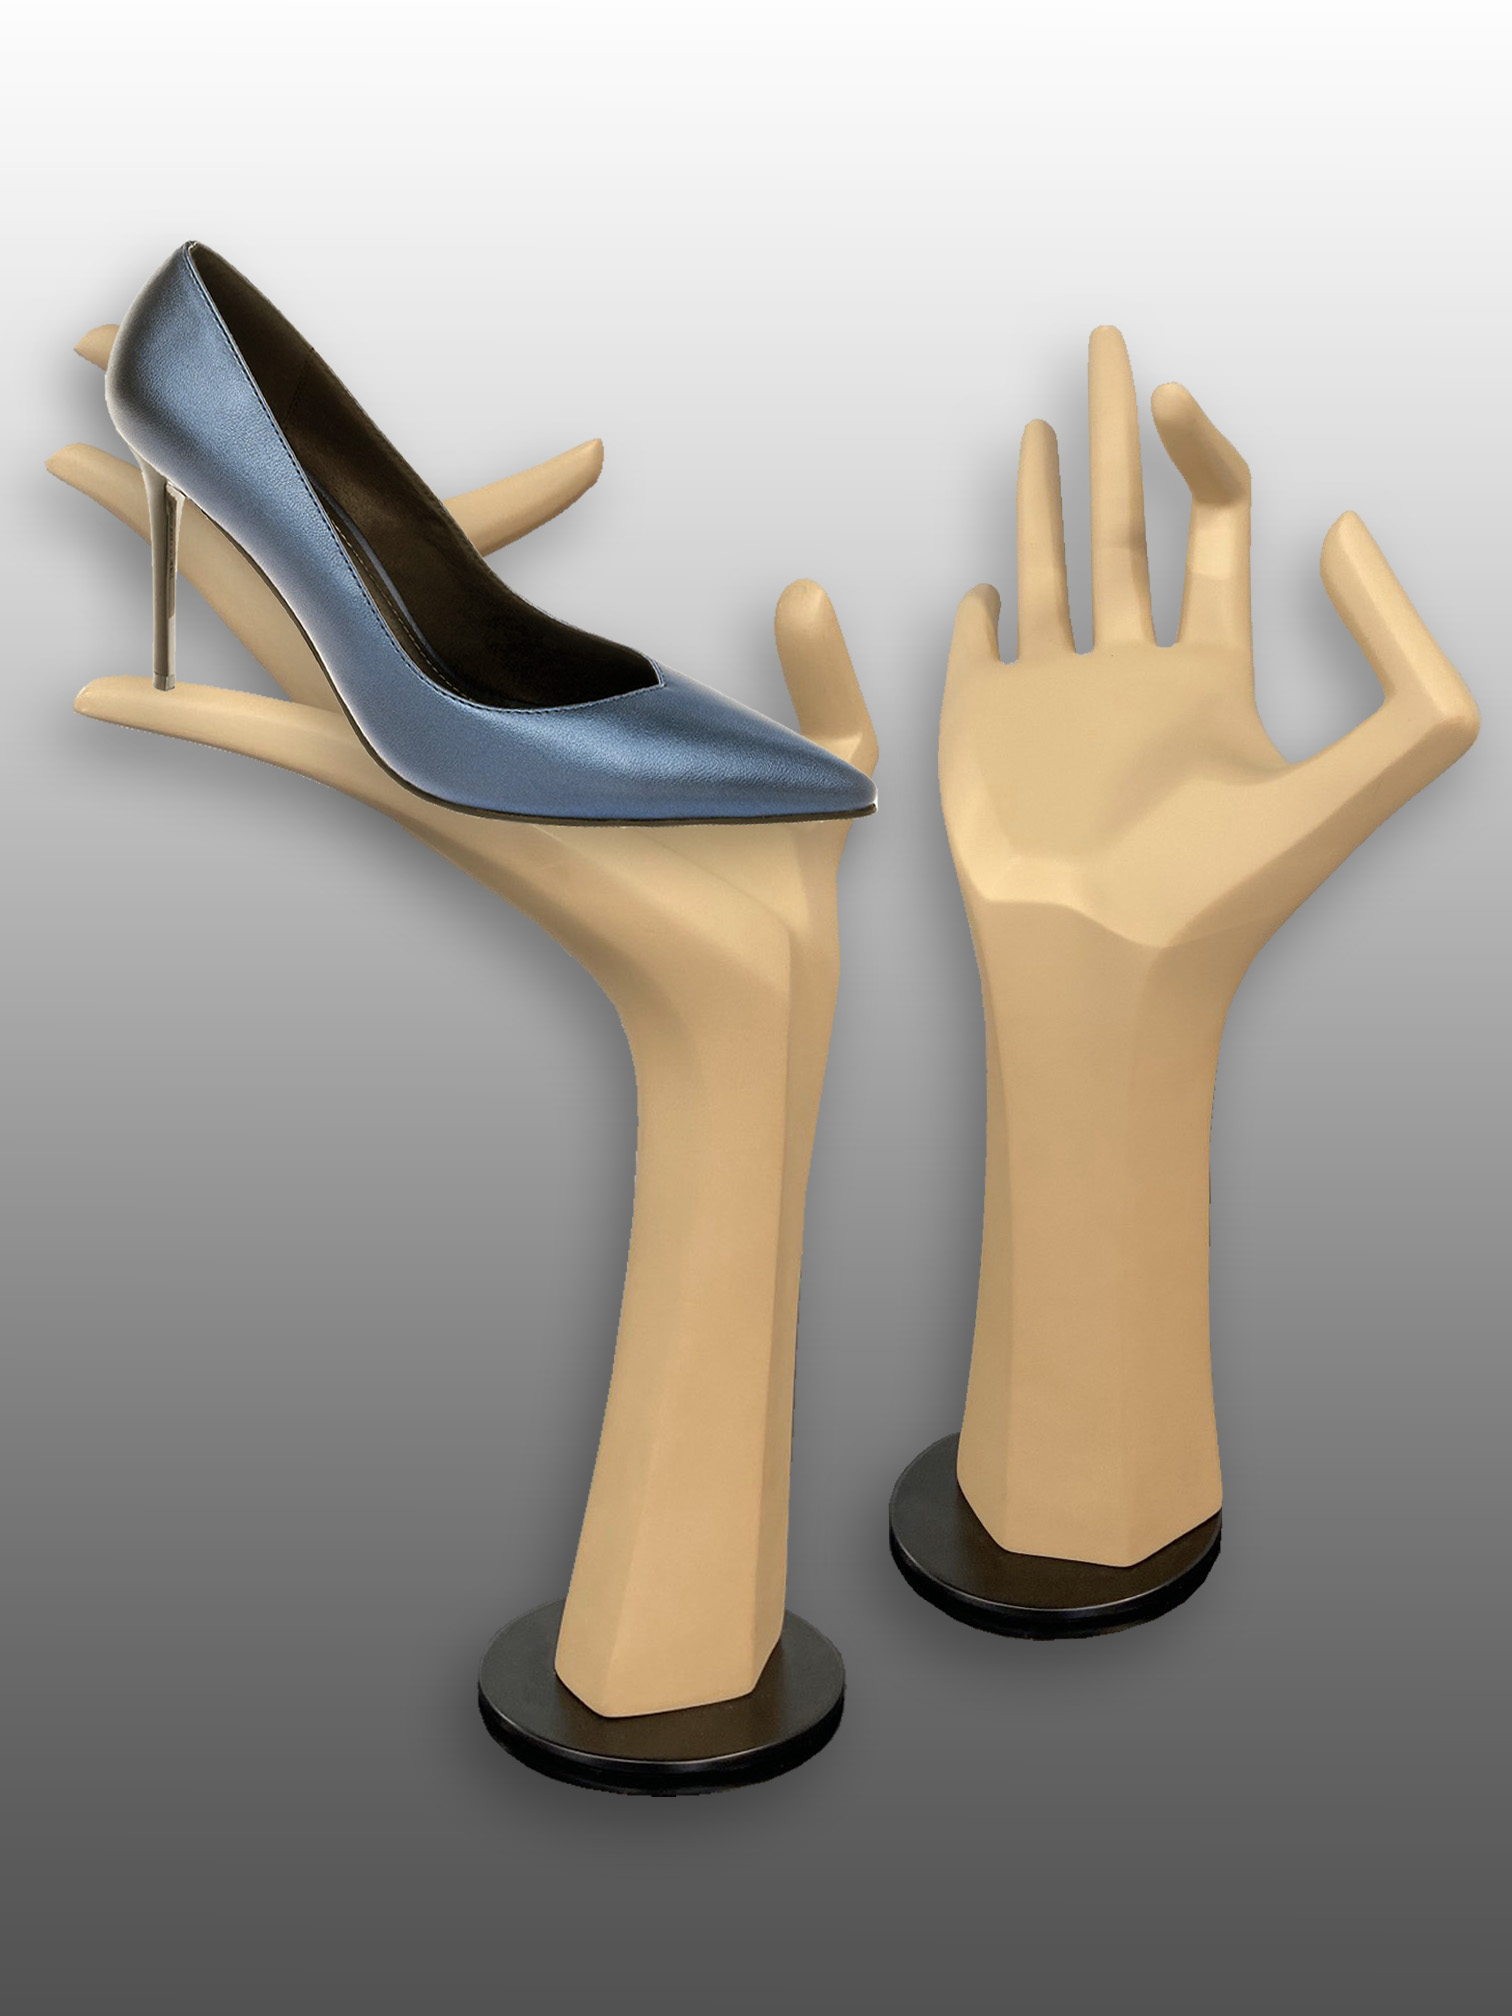 Hand demonstrator for shoes